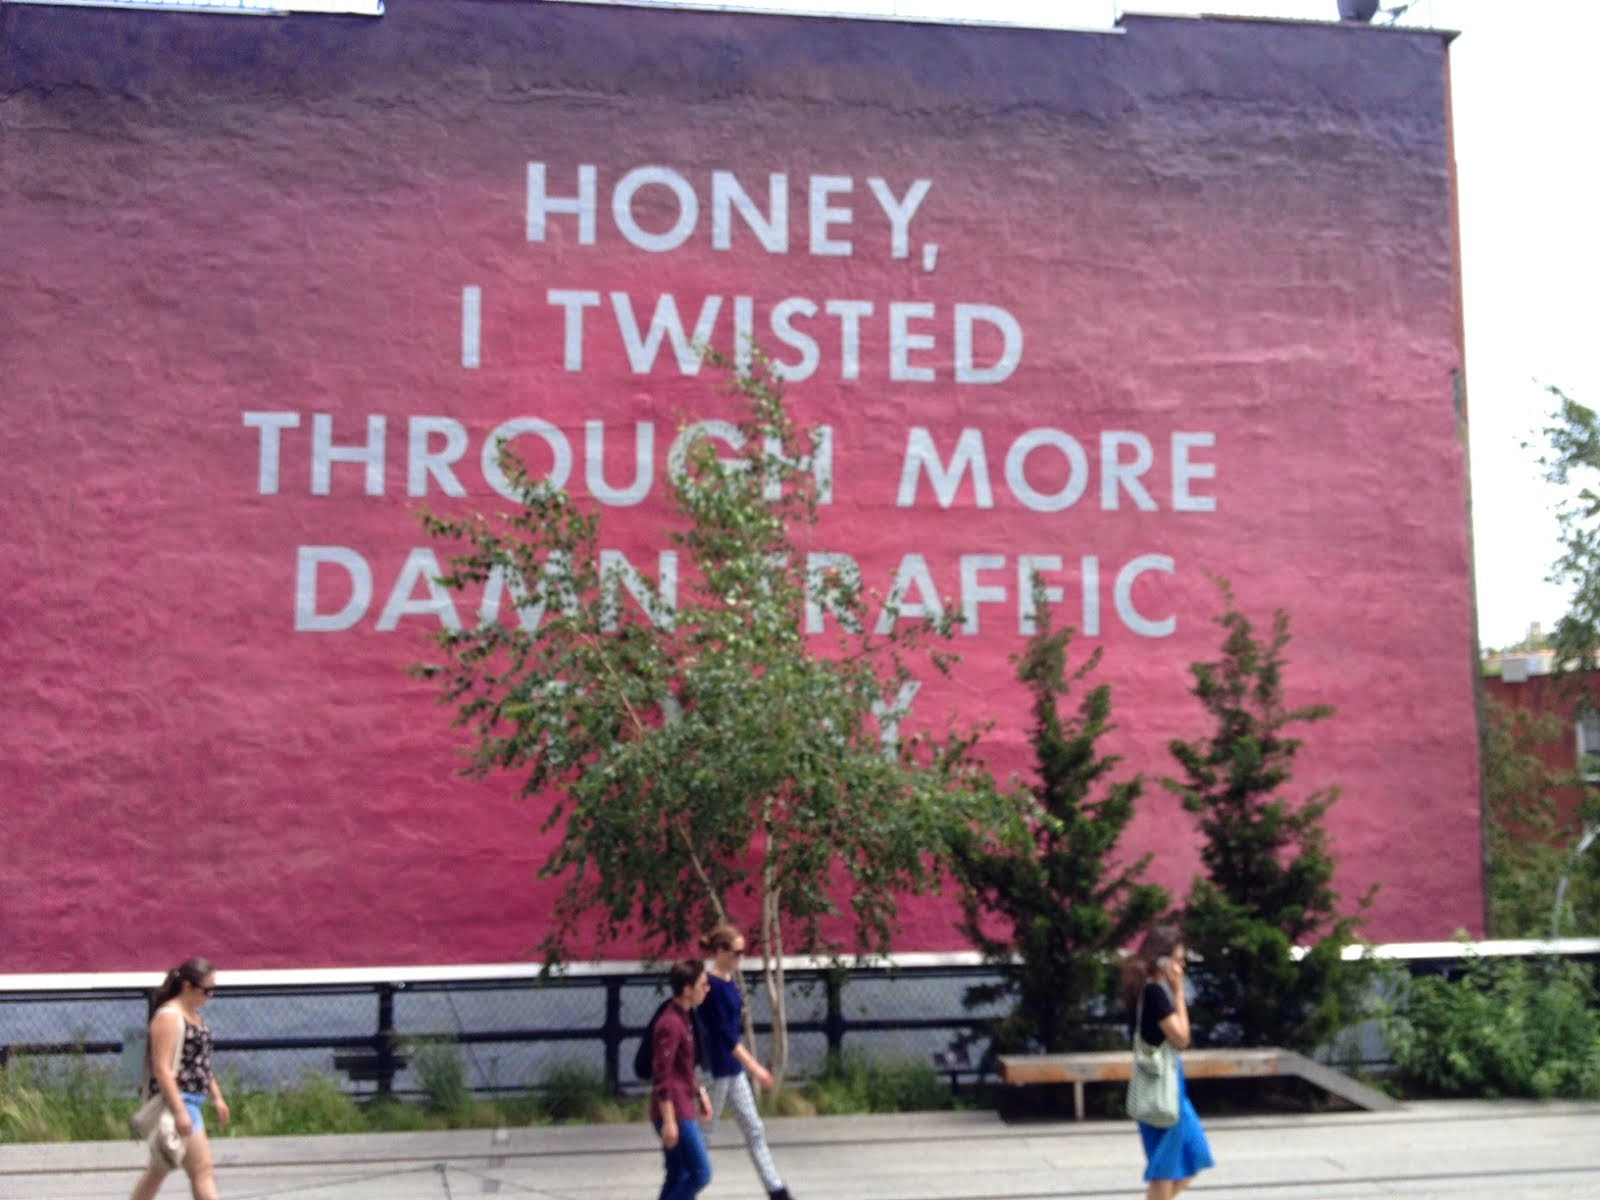 From the Street: Ed Ruscha on The Highline, New York City